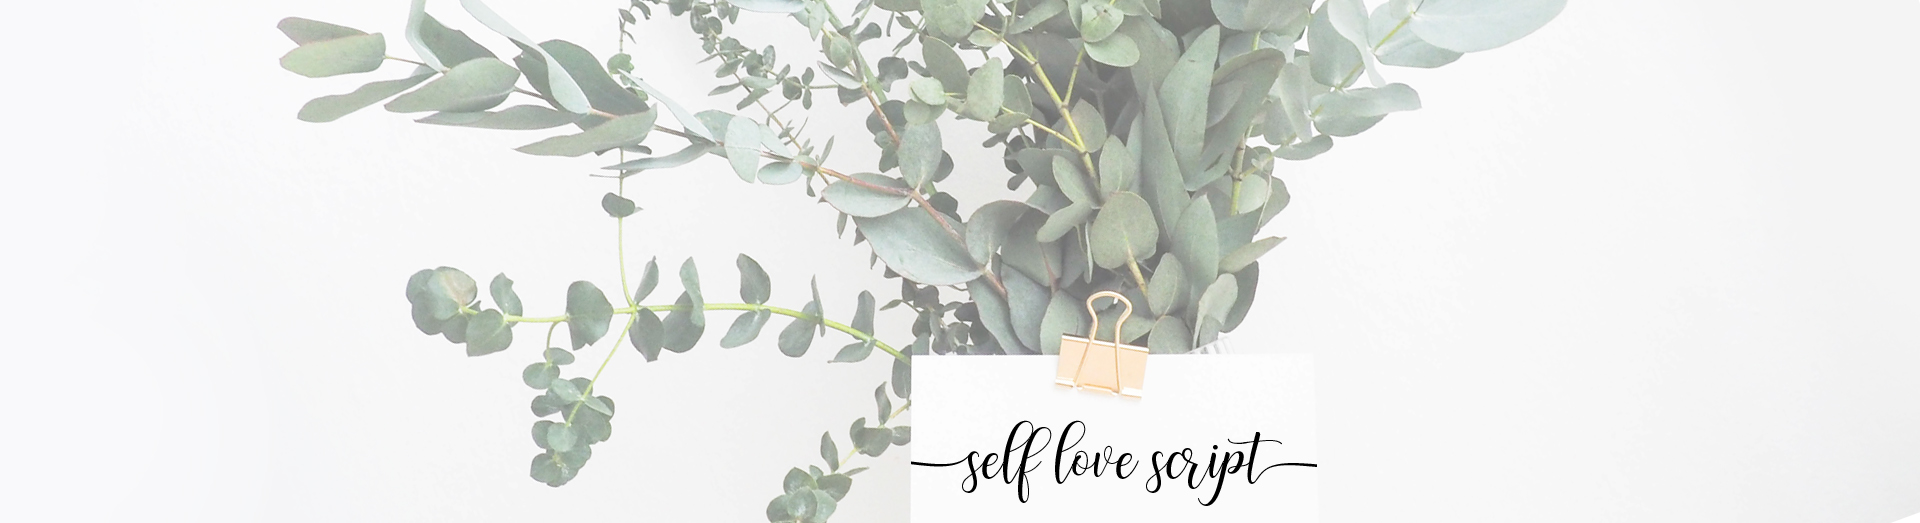 Self Love Script